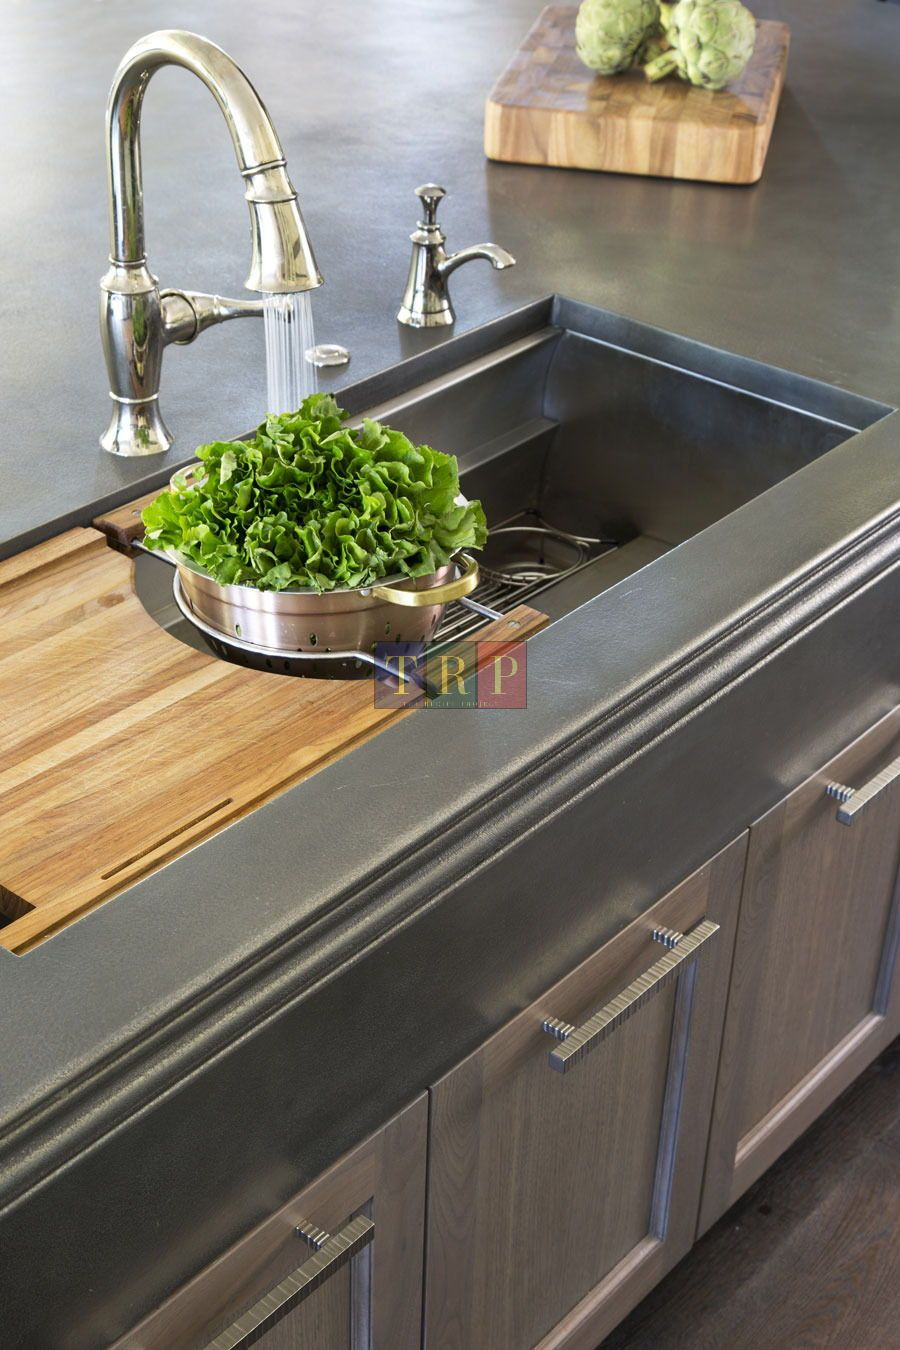 awesome kitchen sink ideas modern cool and corner kitchen sink design kitchen sink design on kitchen sink ideas id=23270